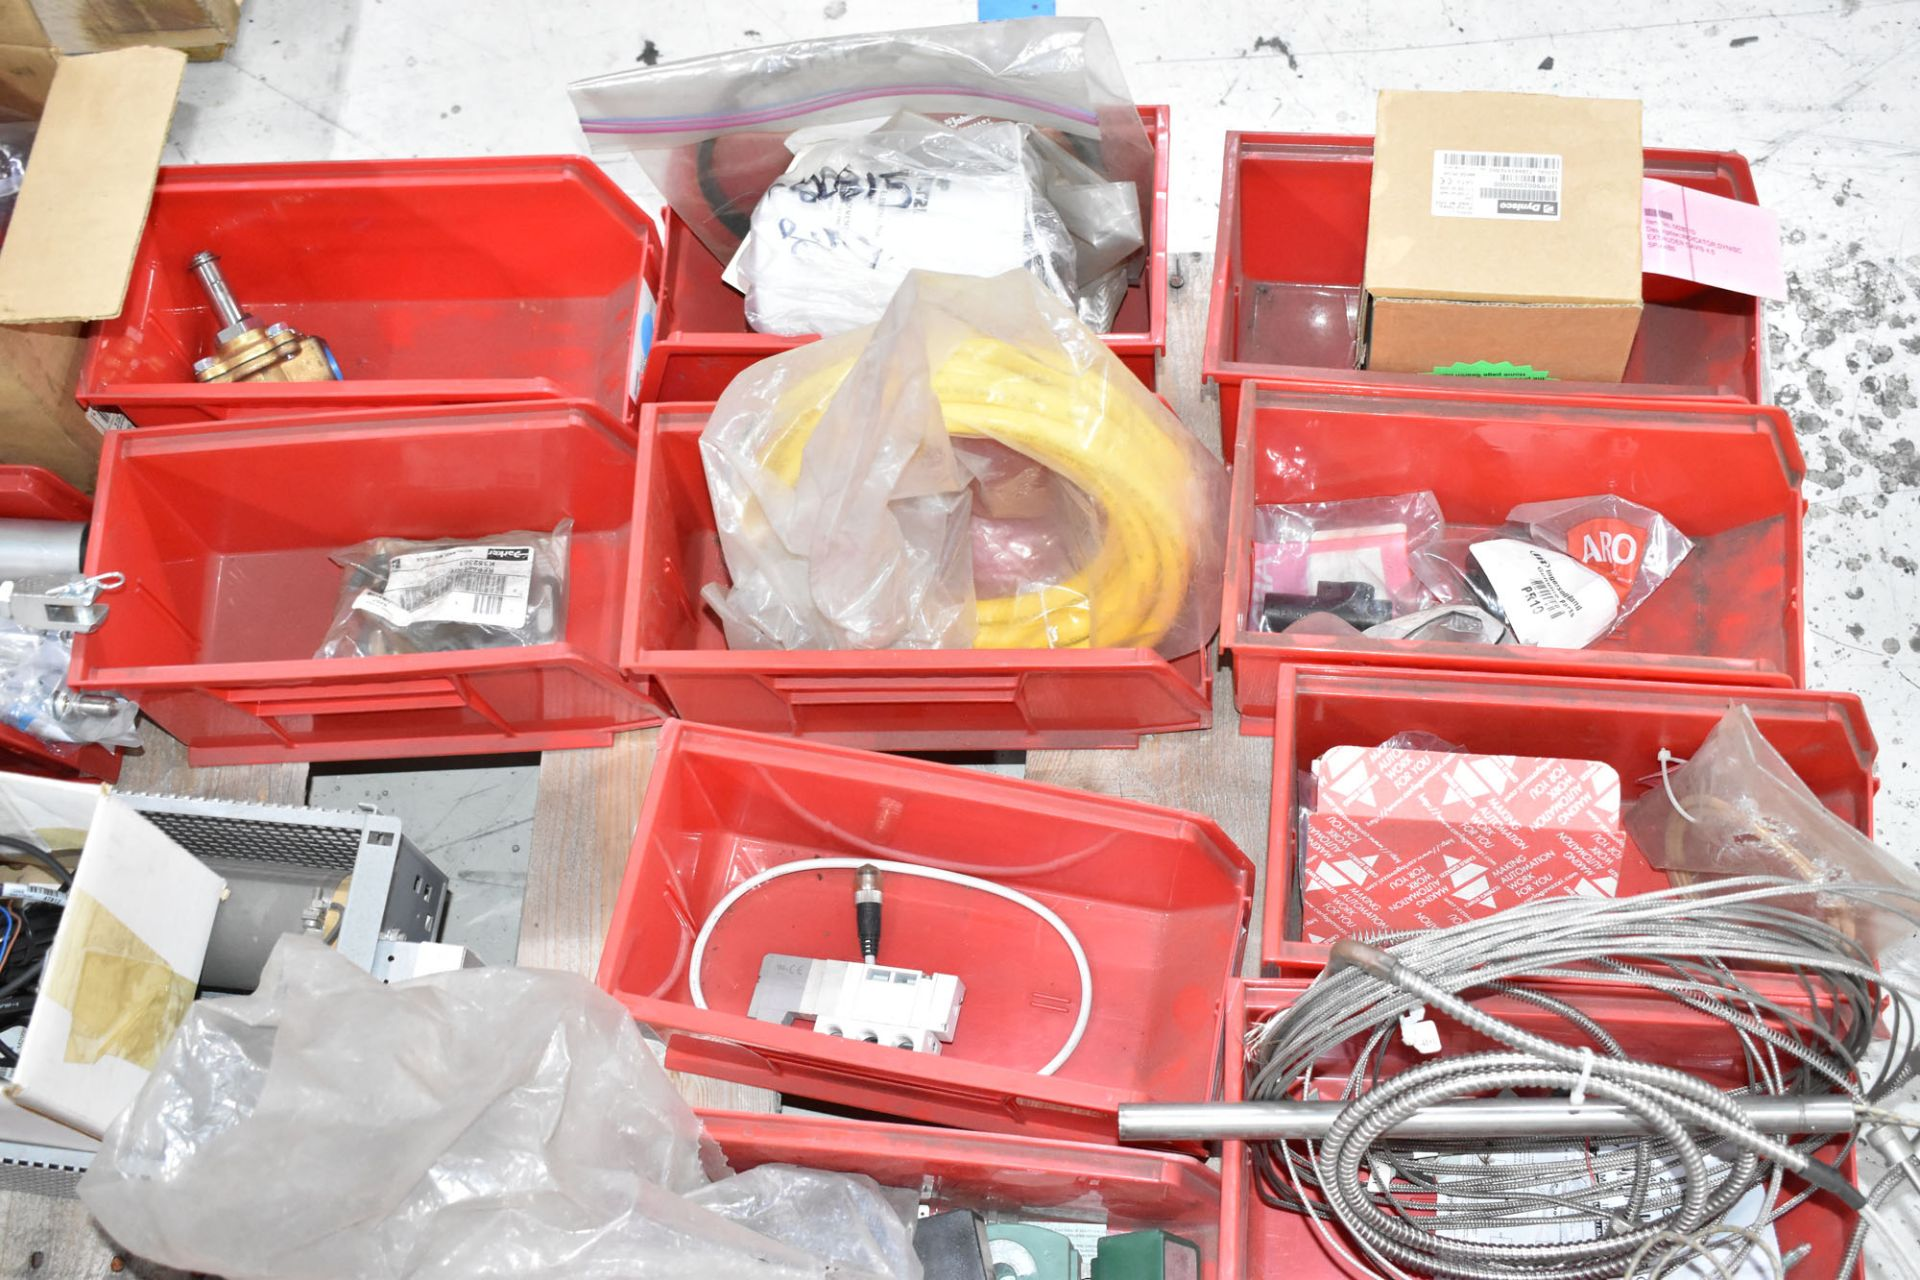 LOT/ PALLET WITH CONTENTS CONSISTING OF BEARINGS, CYLINDERS, AND EXTRUDER LINE COMPONENTS - Image 5 of 5